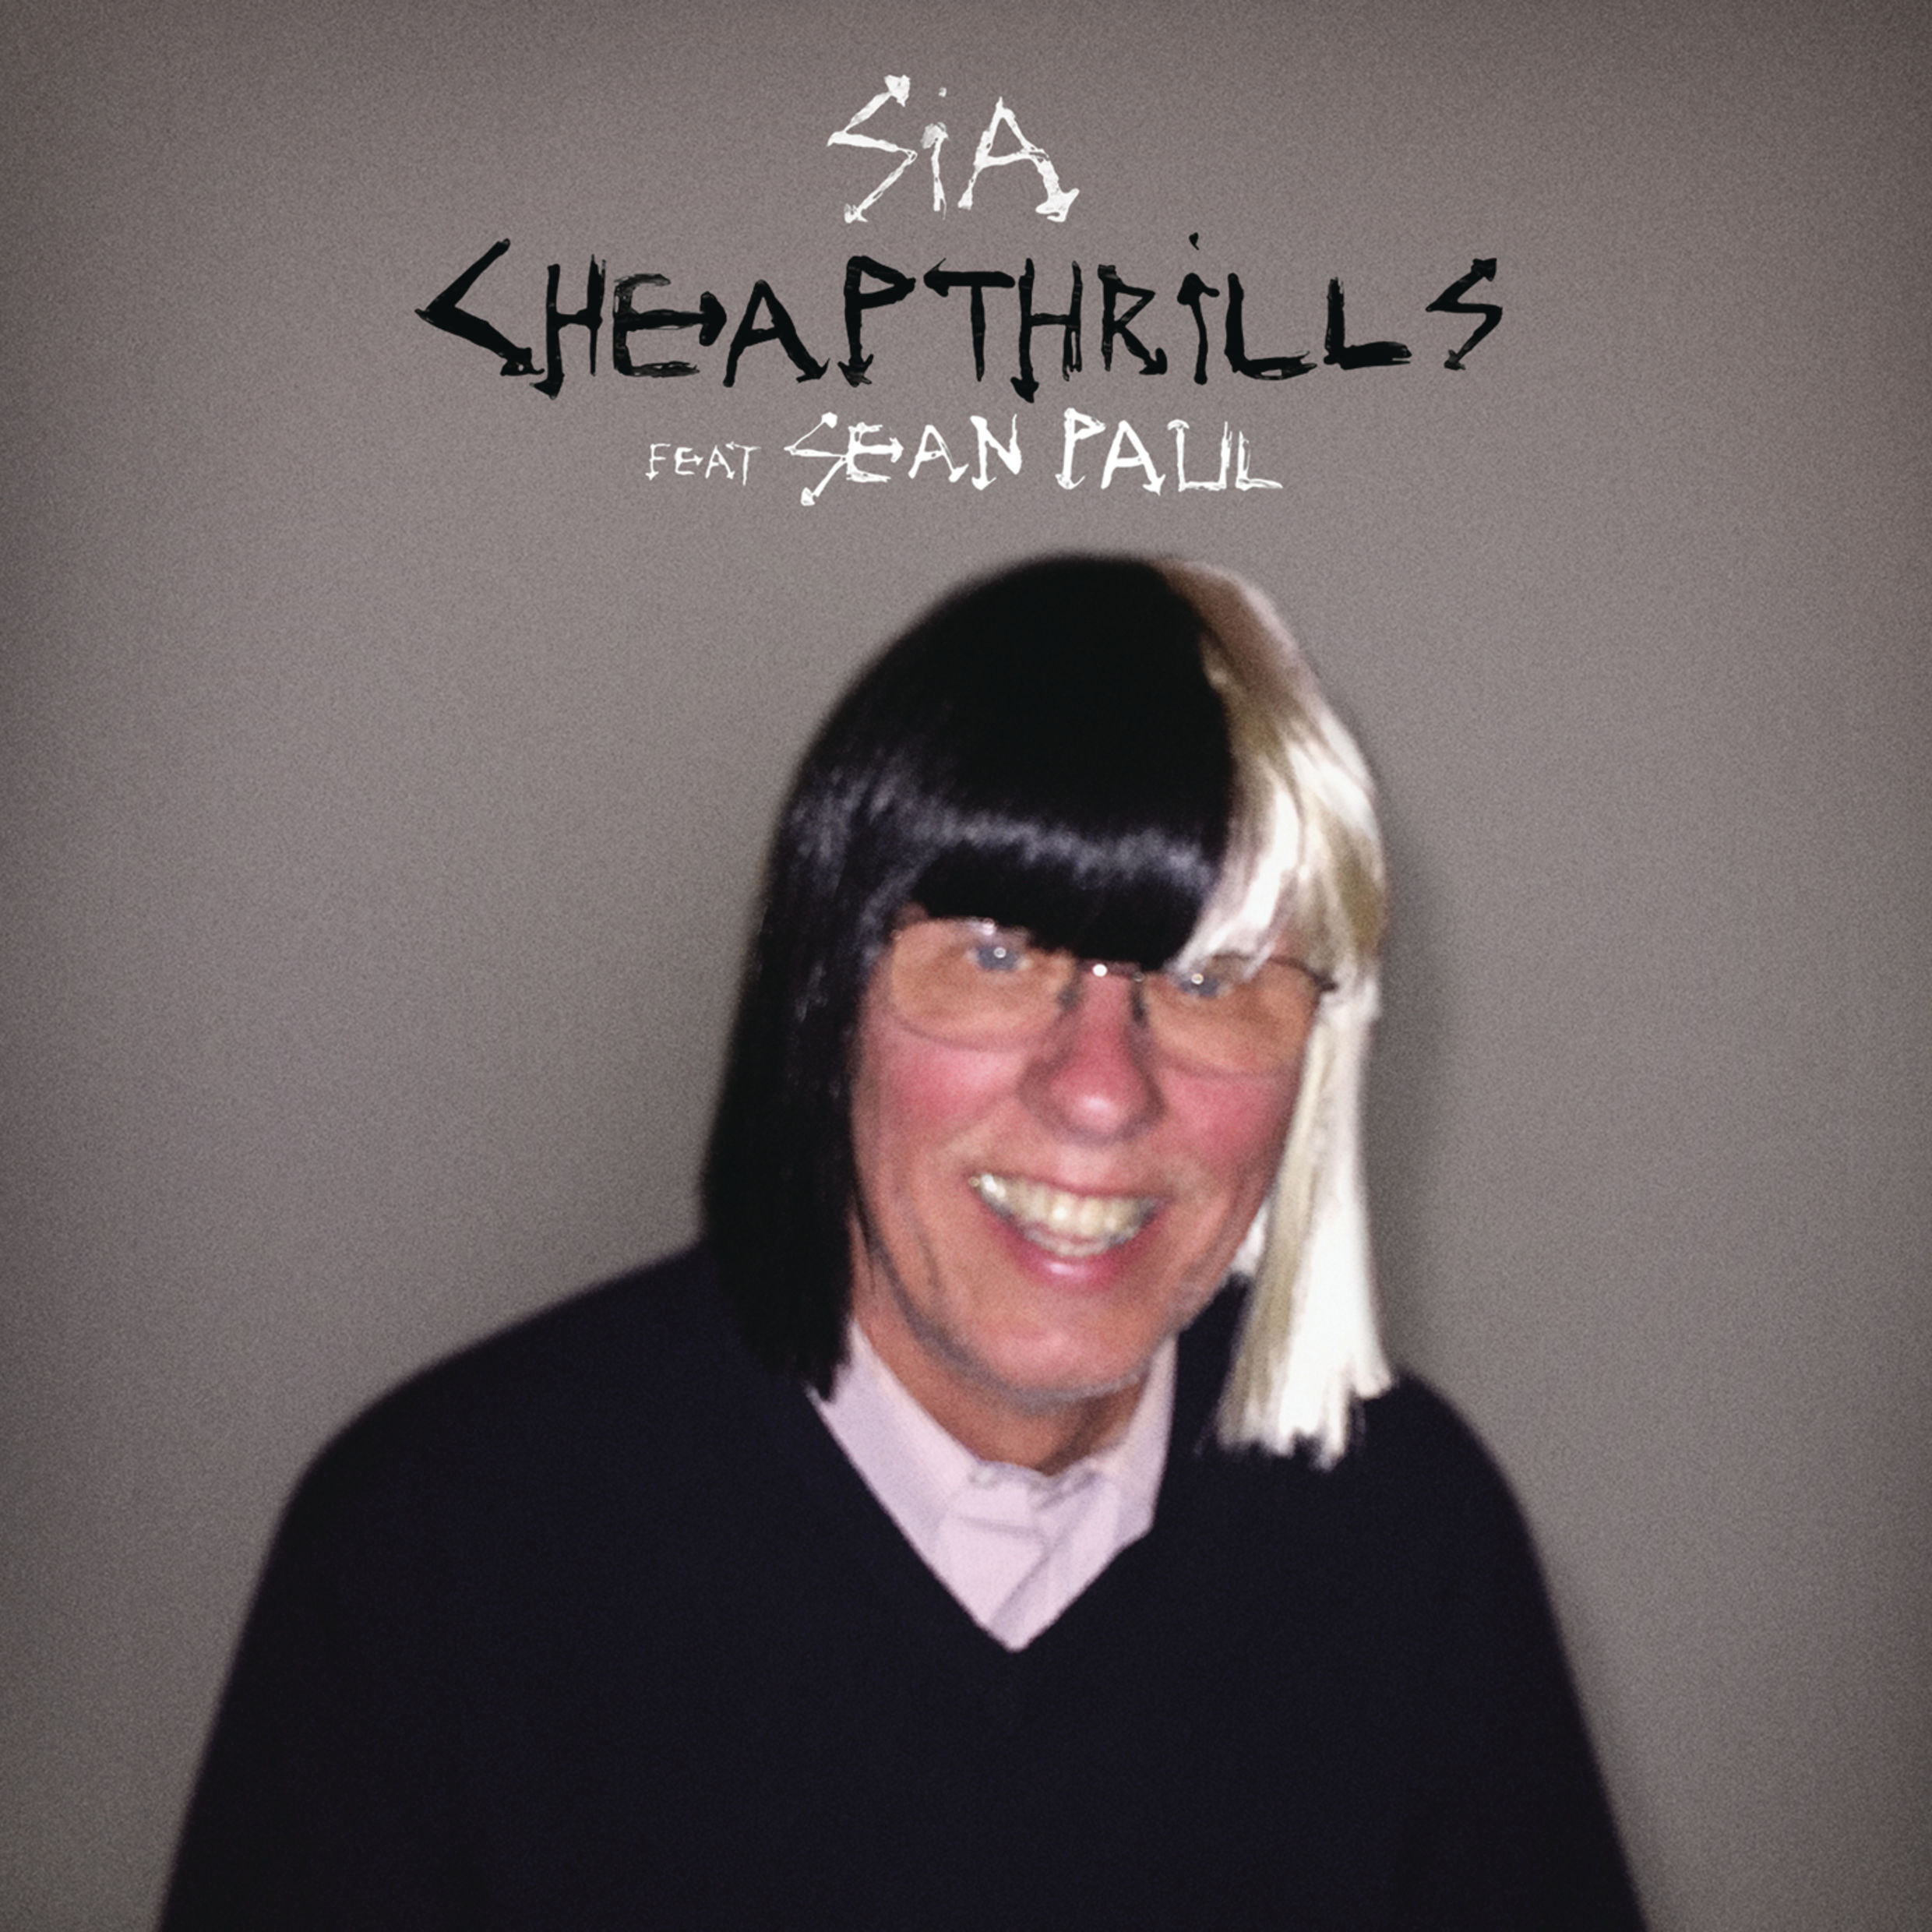 SIA FEAT. SEAN PAUL - Cheap Thrills (Monkey Puzzle/RCA/Sony)